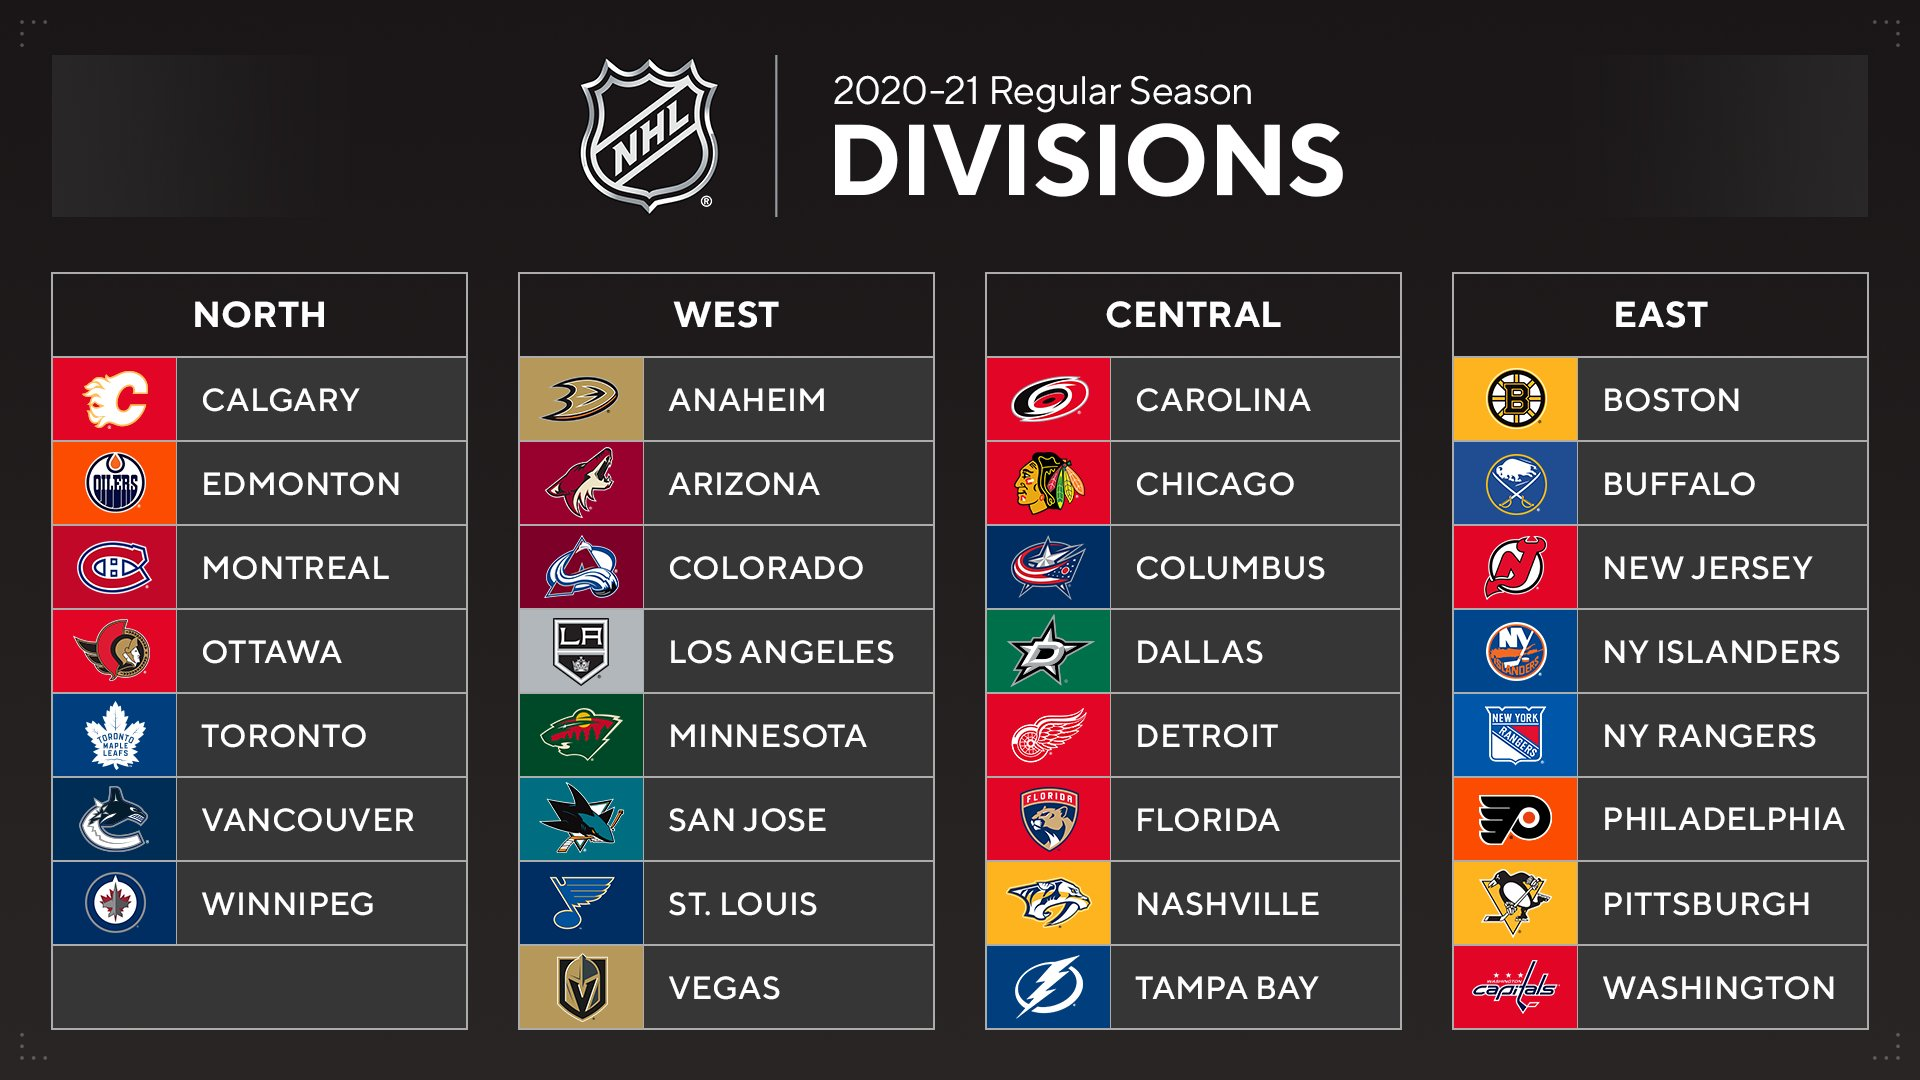 Hockey is Back: NHL and Players Association Agree on 56-Game Schedule, New  Divisions - On Tap Sports Net